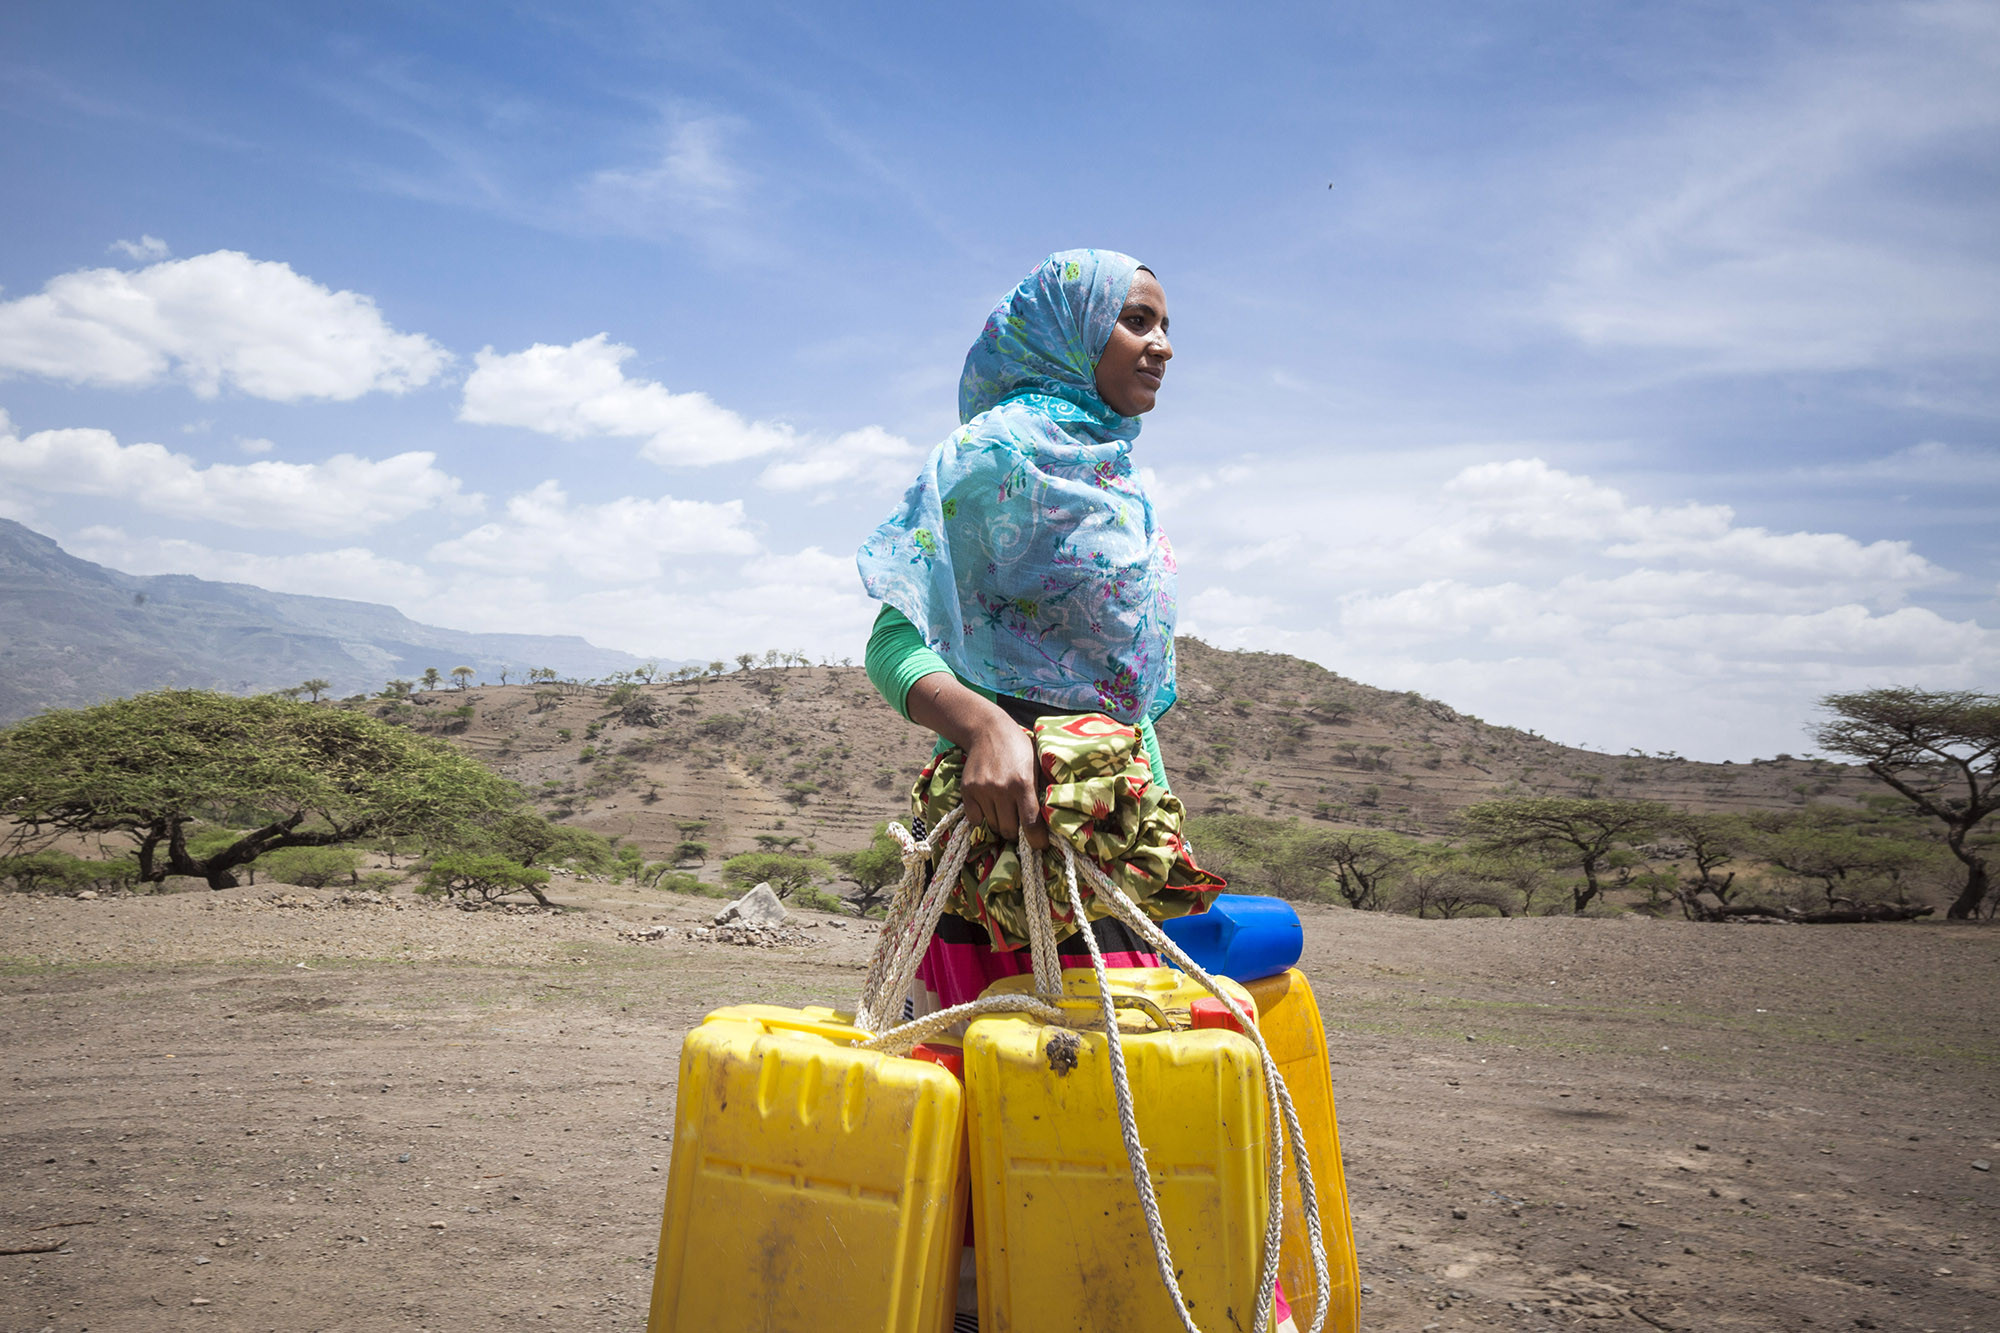 Up until last year, Kadija, 19 from Lalibela Ethiopia, would walk for hours to fetch clean water due. A situation worsened by El Nino.